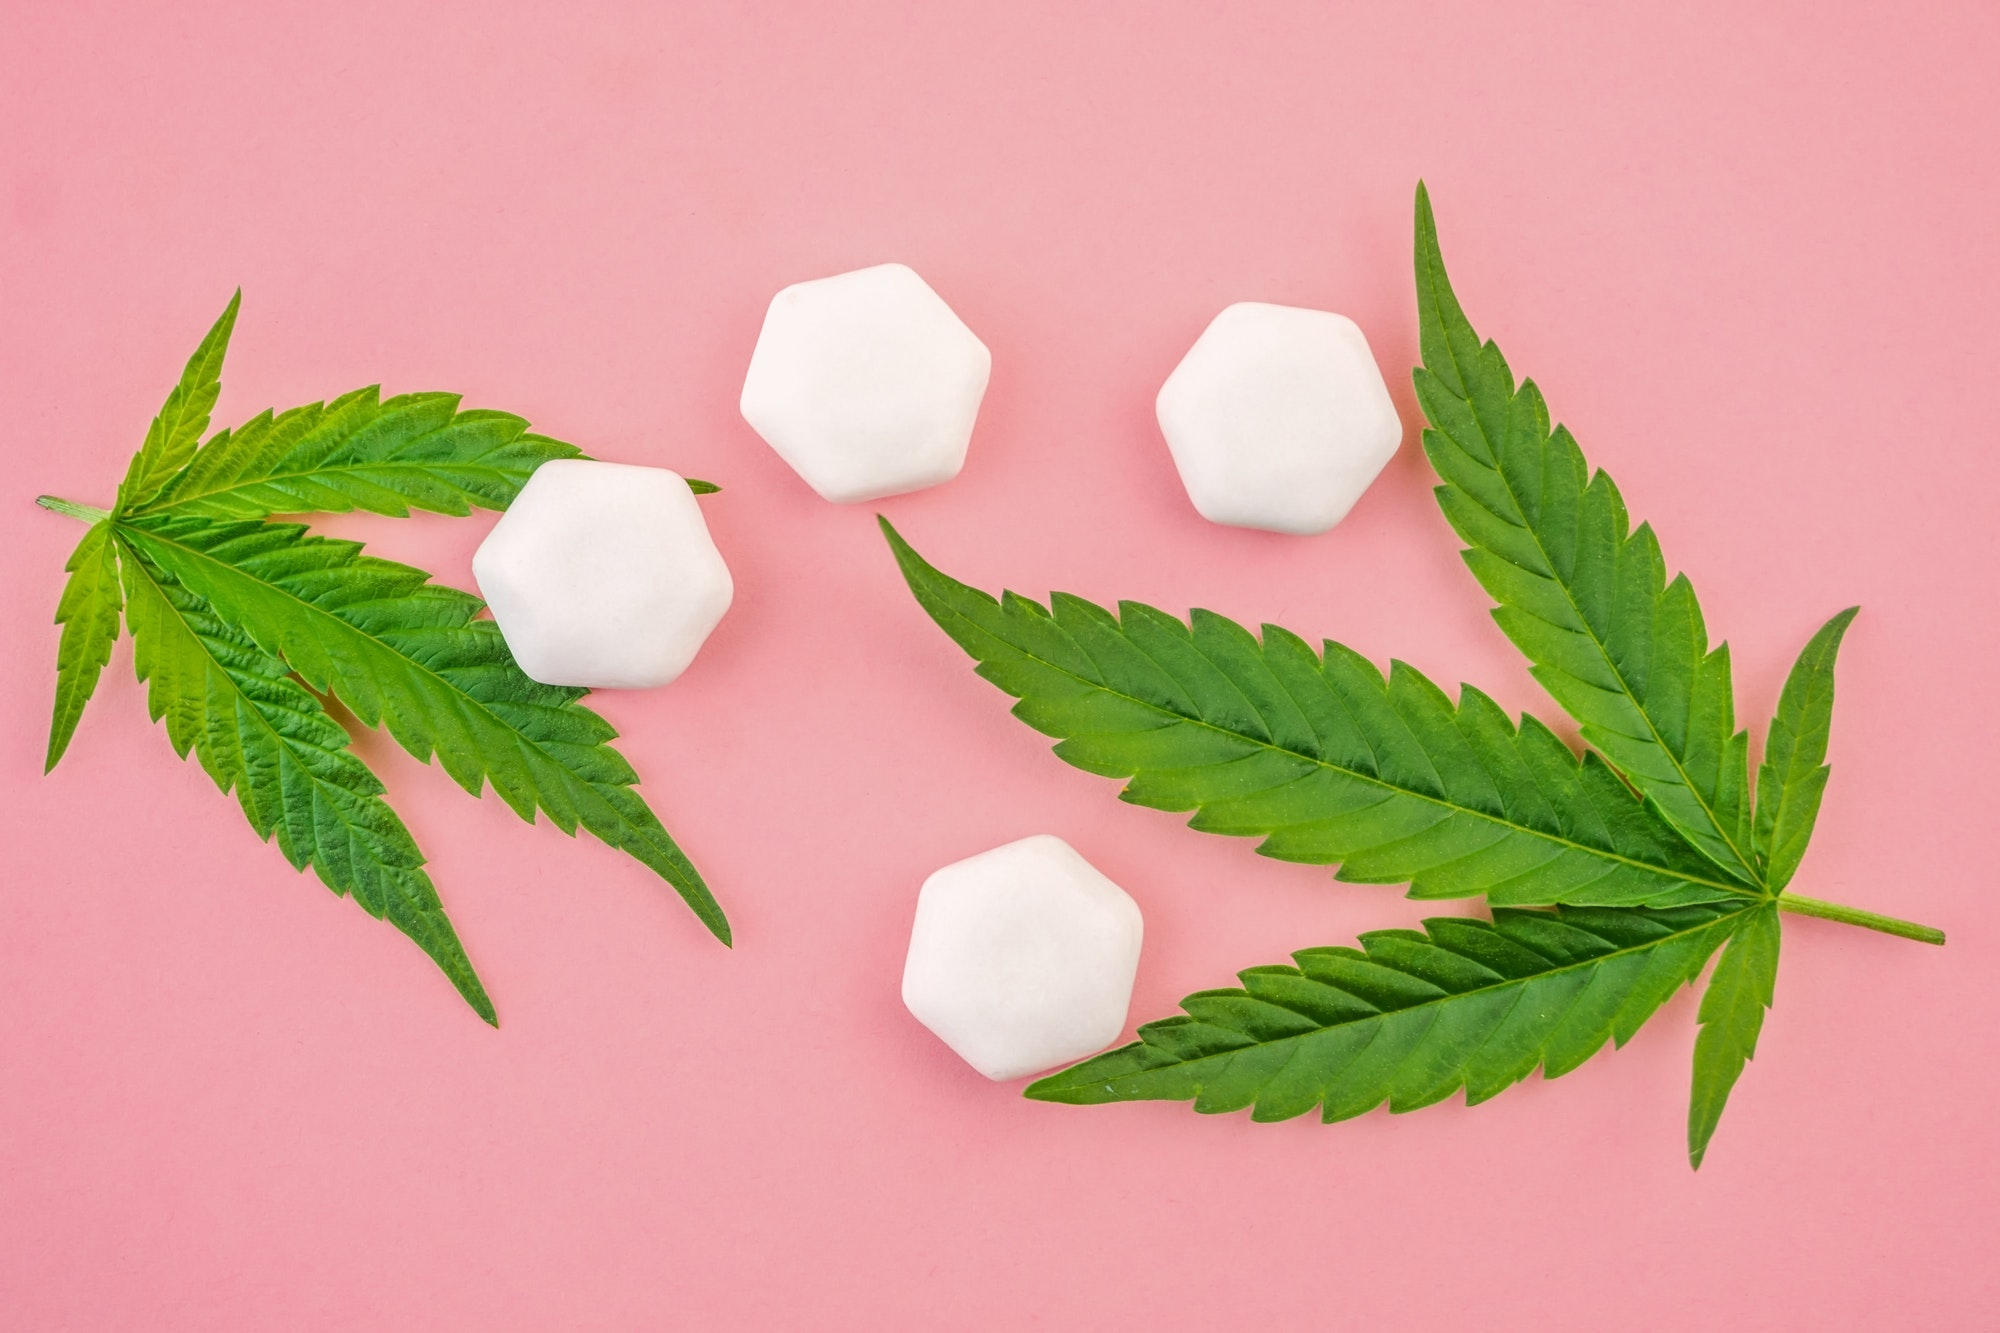 CBD chewing gum Drops with cannabis leafs